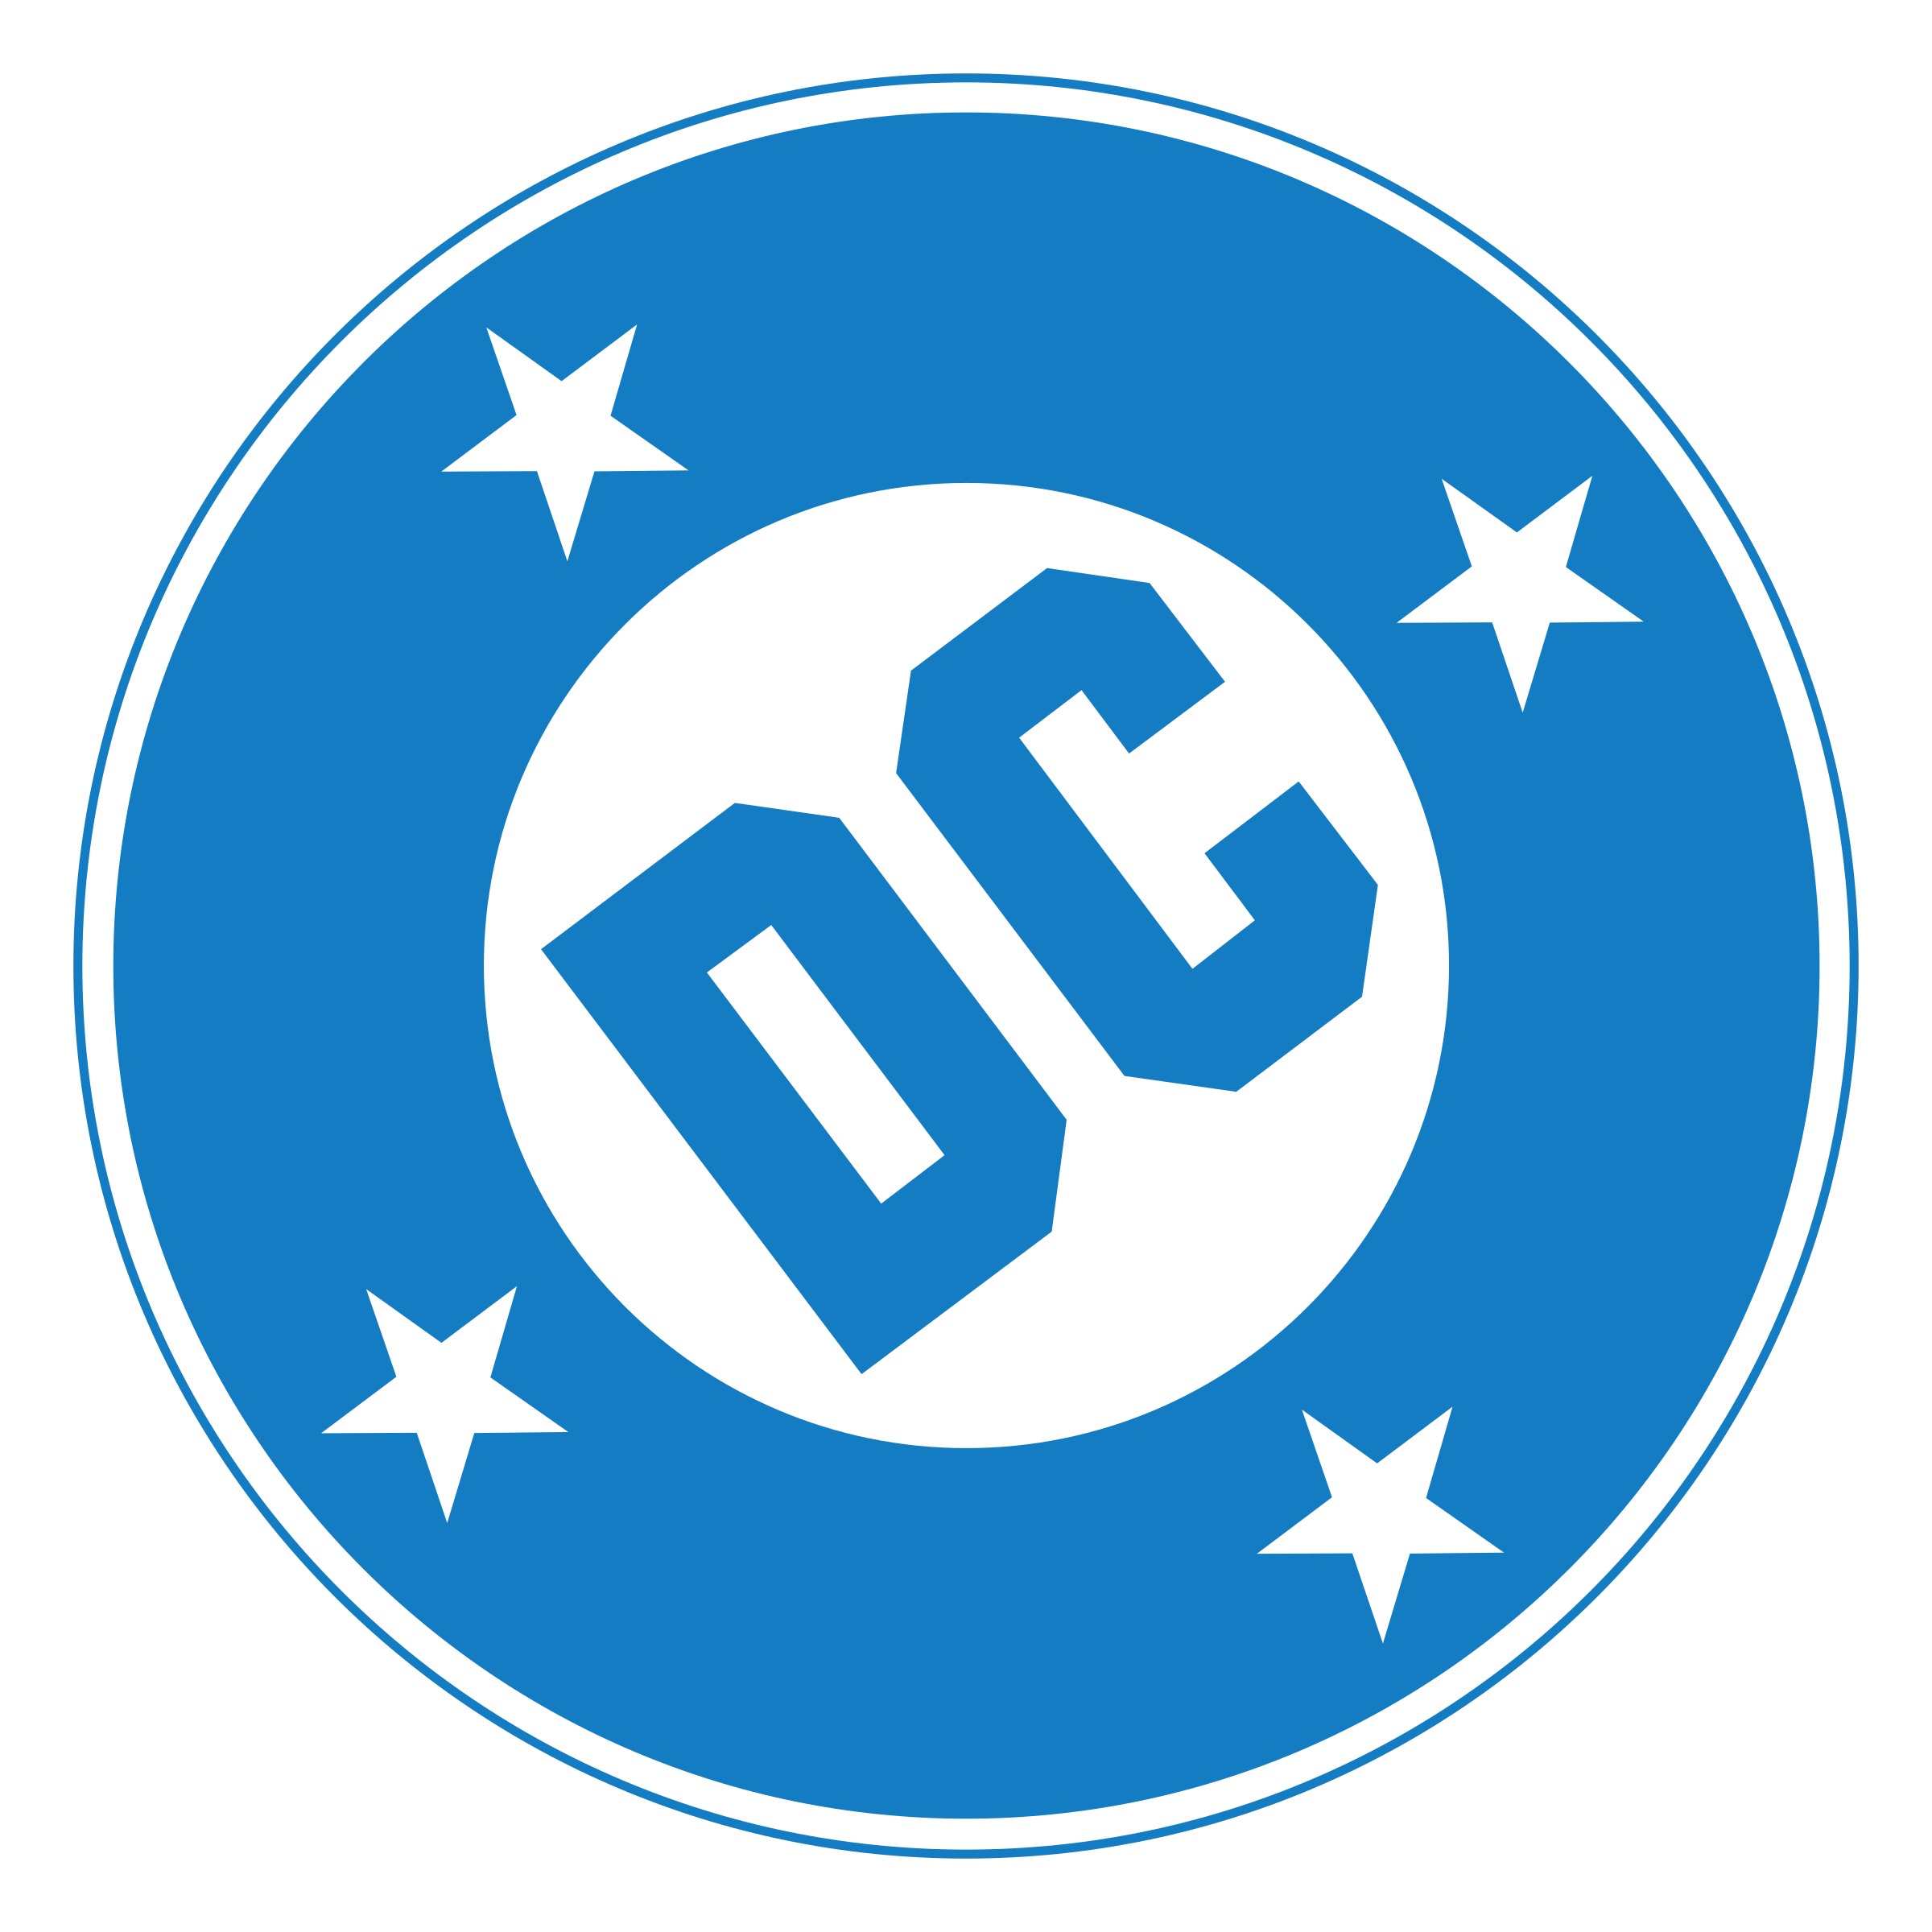 DC Logo - DC Logo PNG Transparent & SVG Vector - Freebie Supply